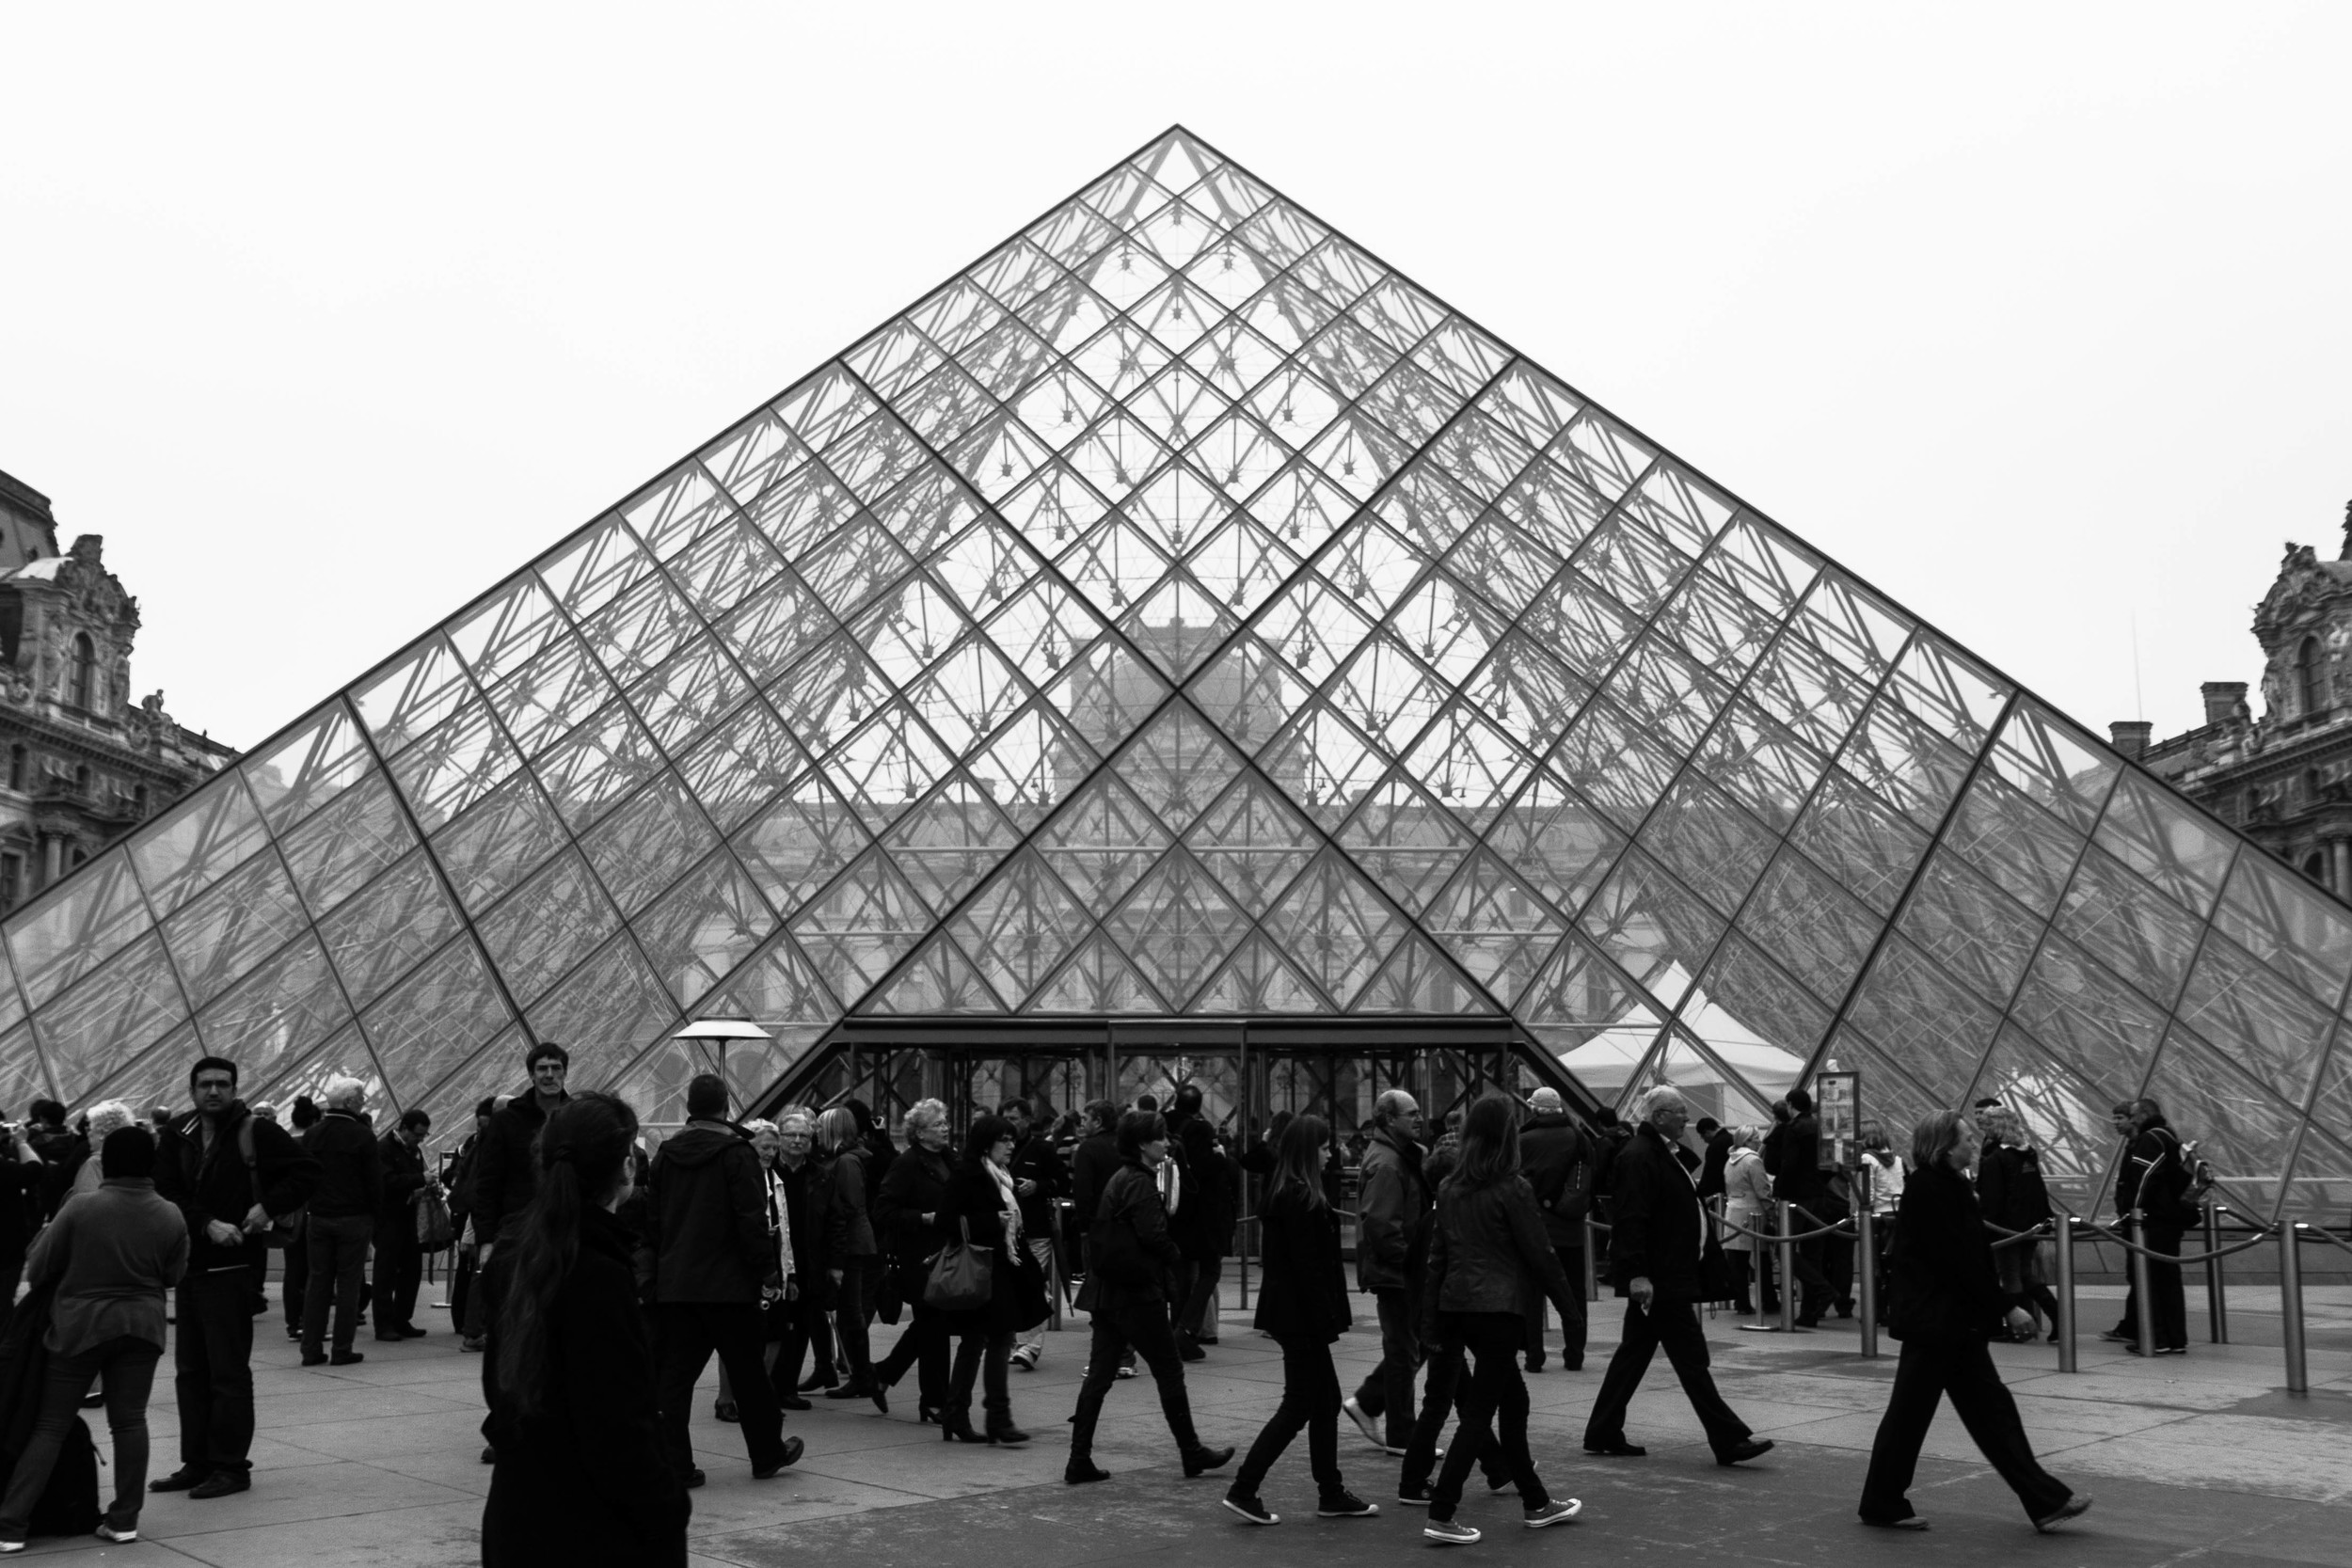 Pyramid in Paris